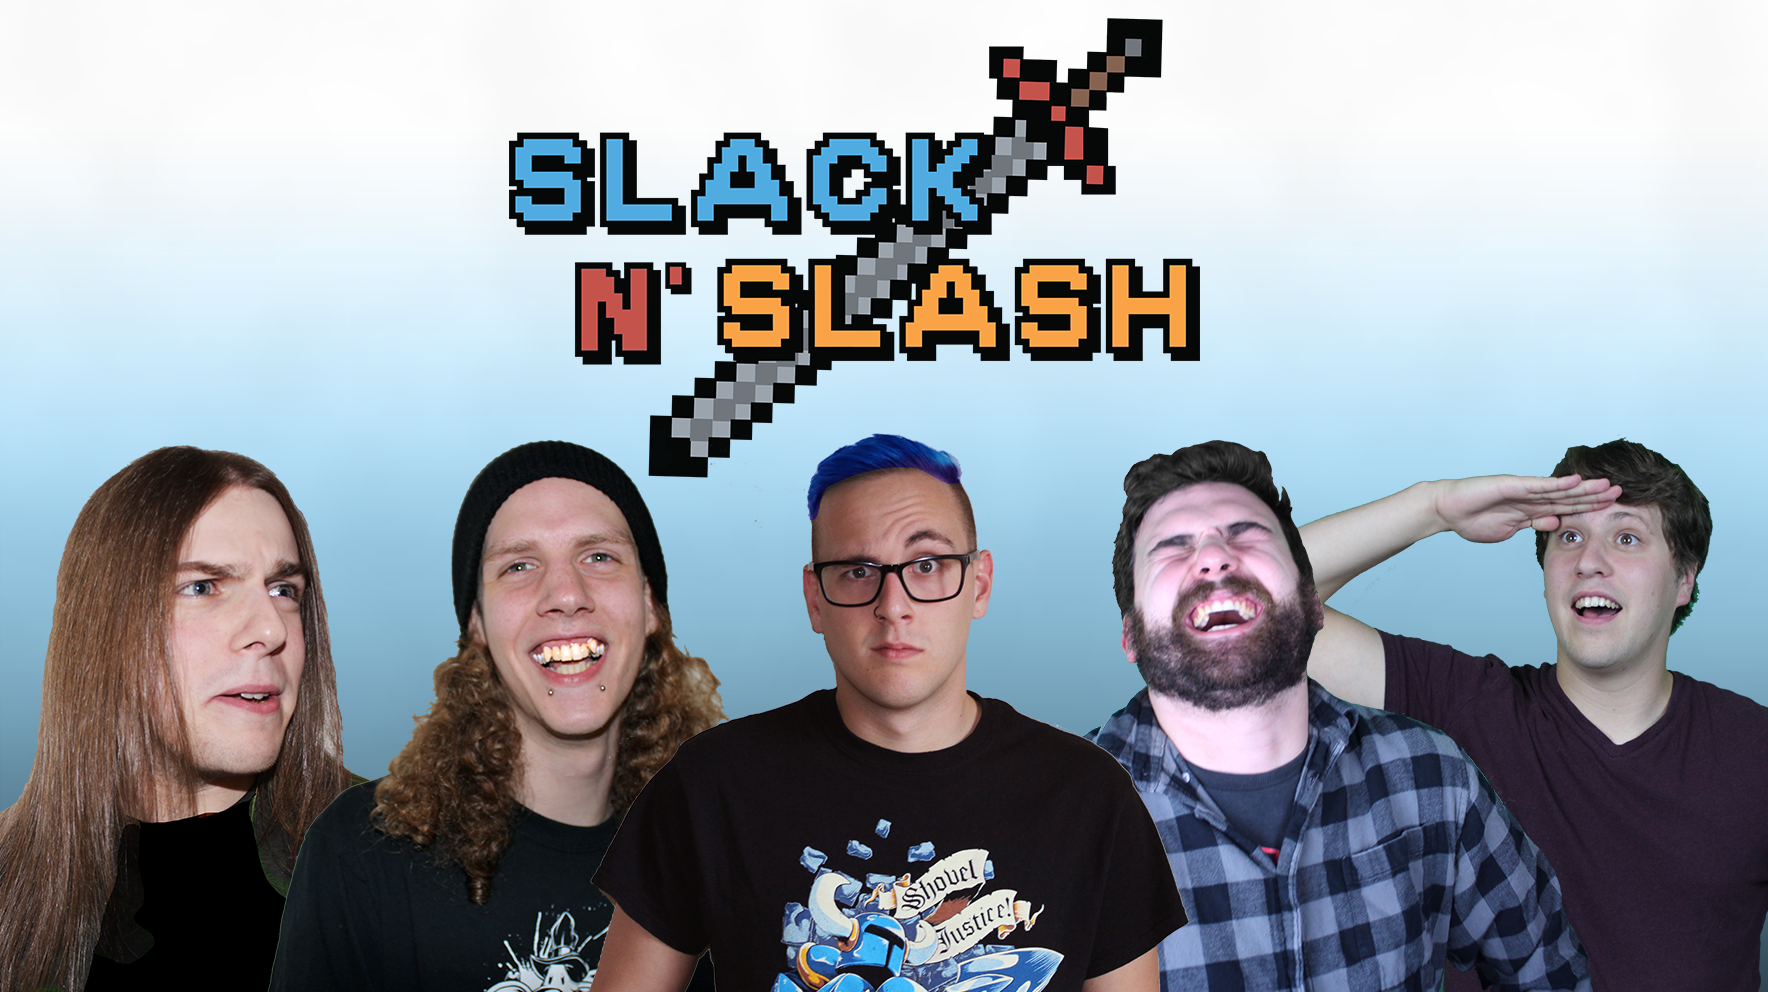 Welcome to Slack N' Slash! We make videos about video games. The whole thing is pretty meta.